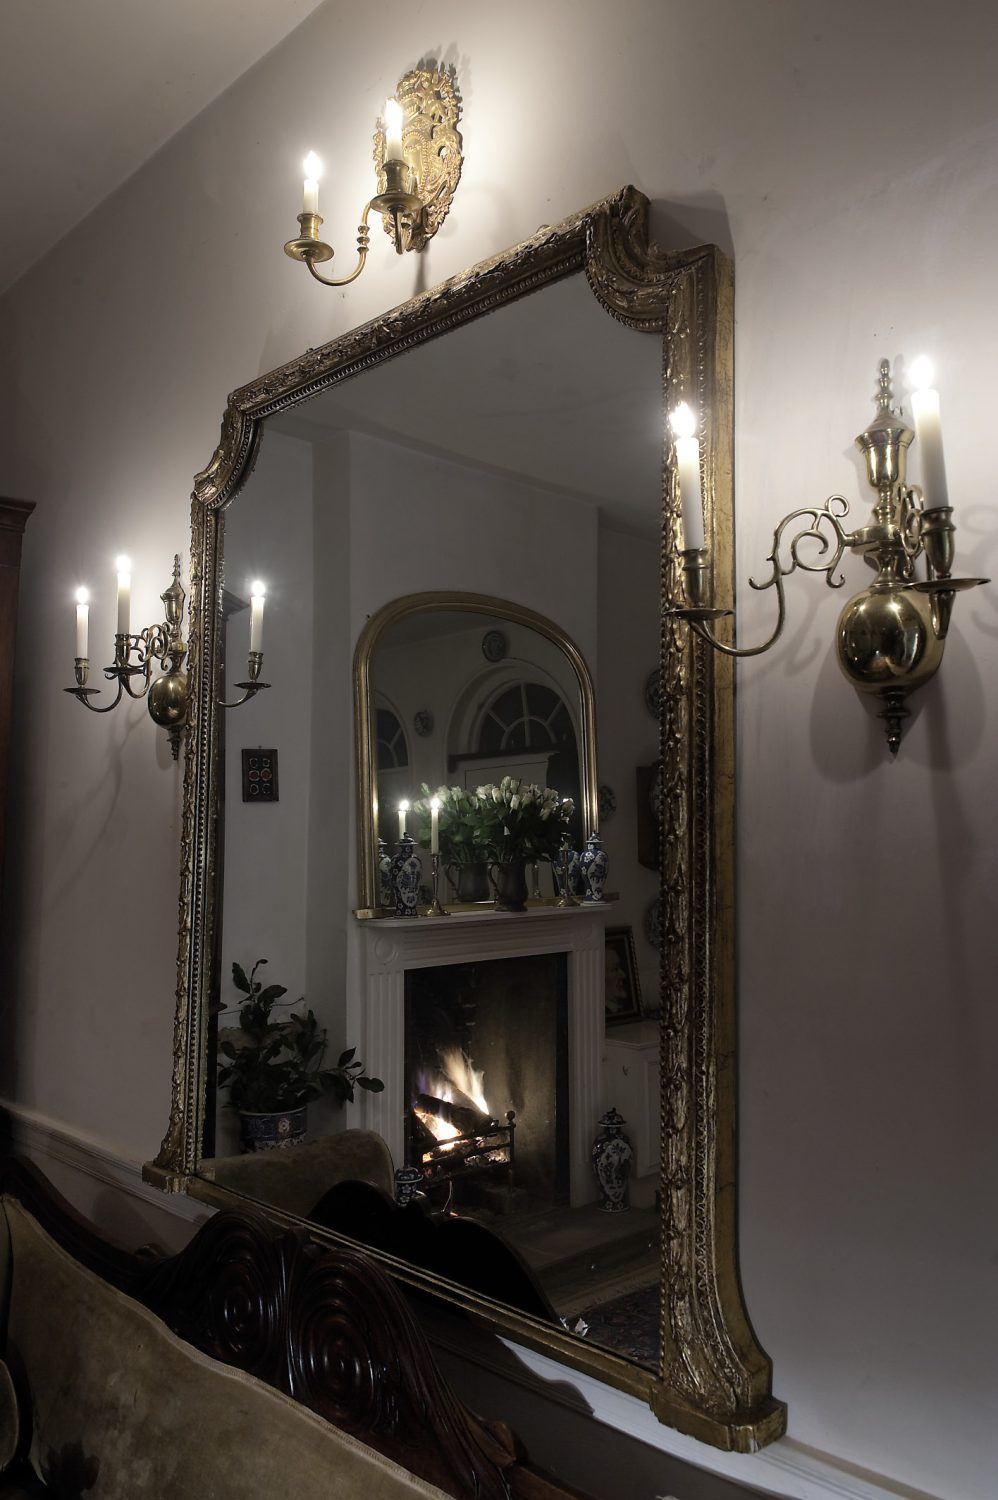 Mirrors throughout the house magnify the sense of space